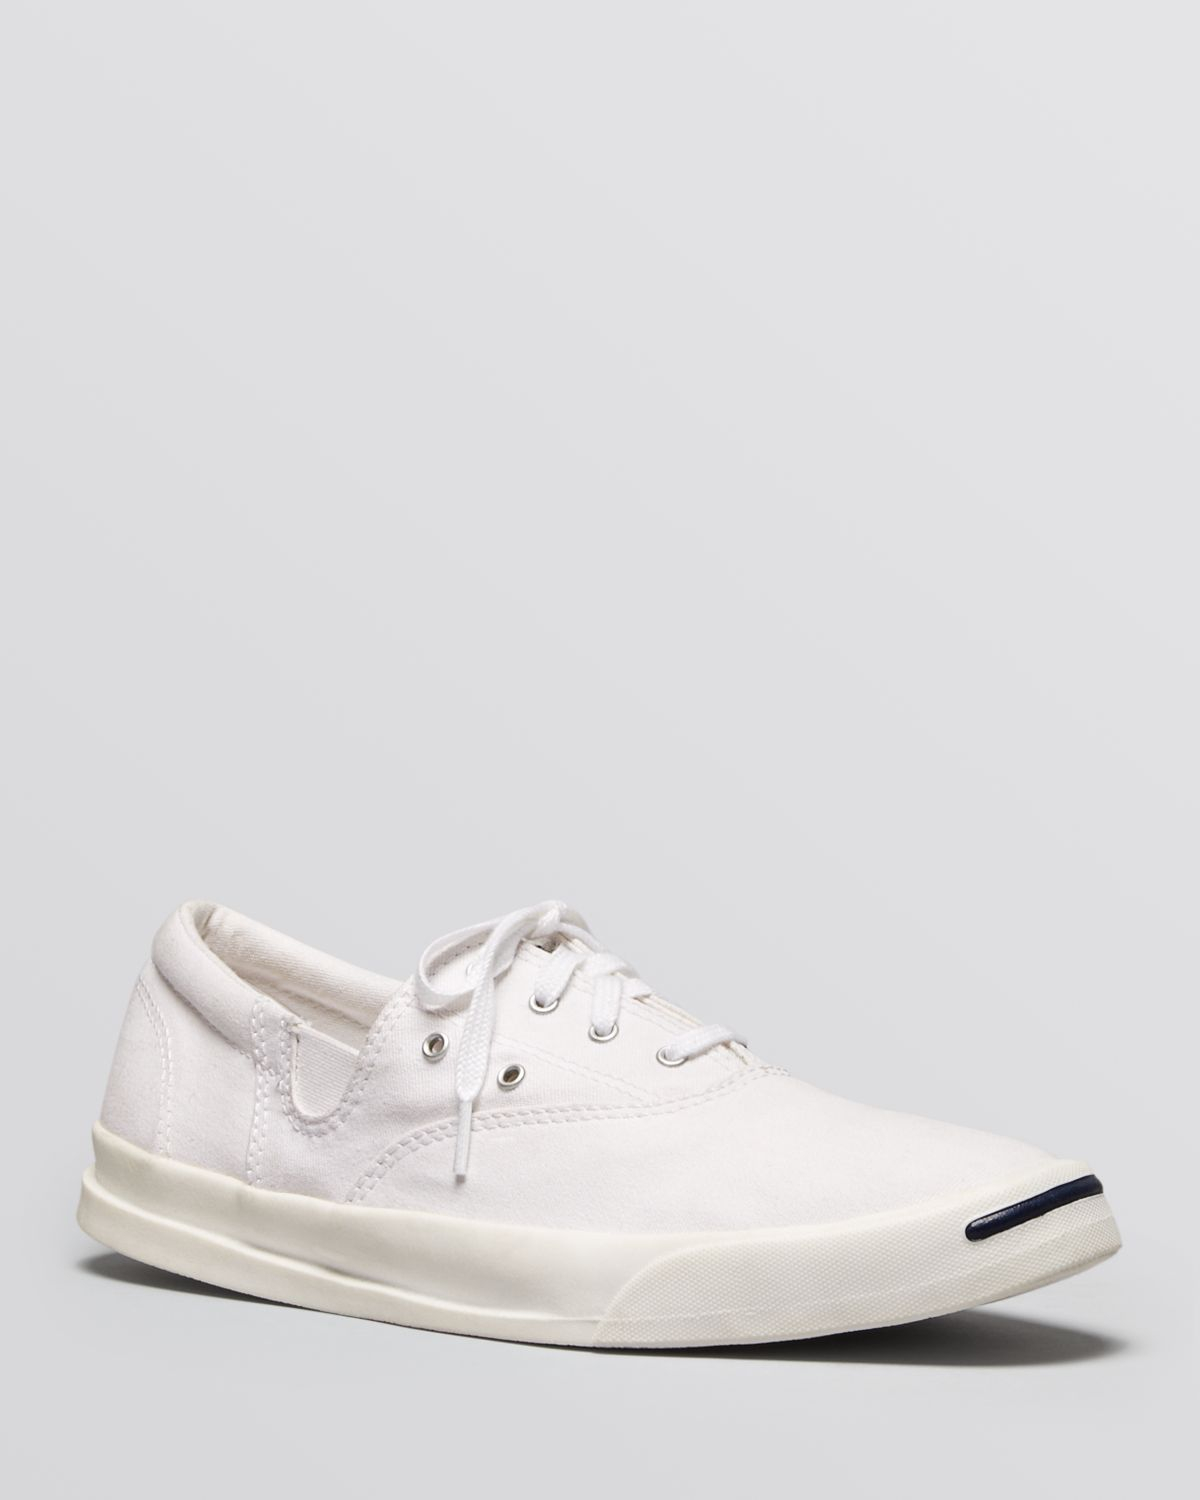 77f27789c037 Lyst - Converse Jack Purcell Jeffrey Cvo Sneakers in White for Men